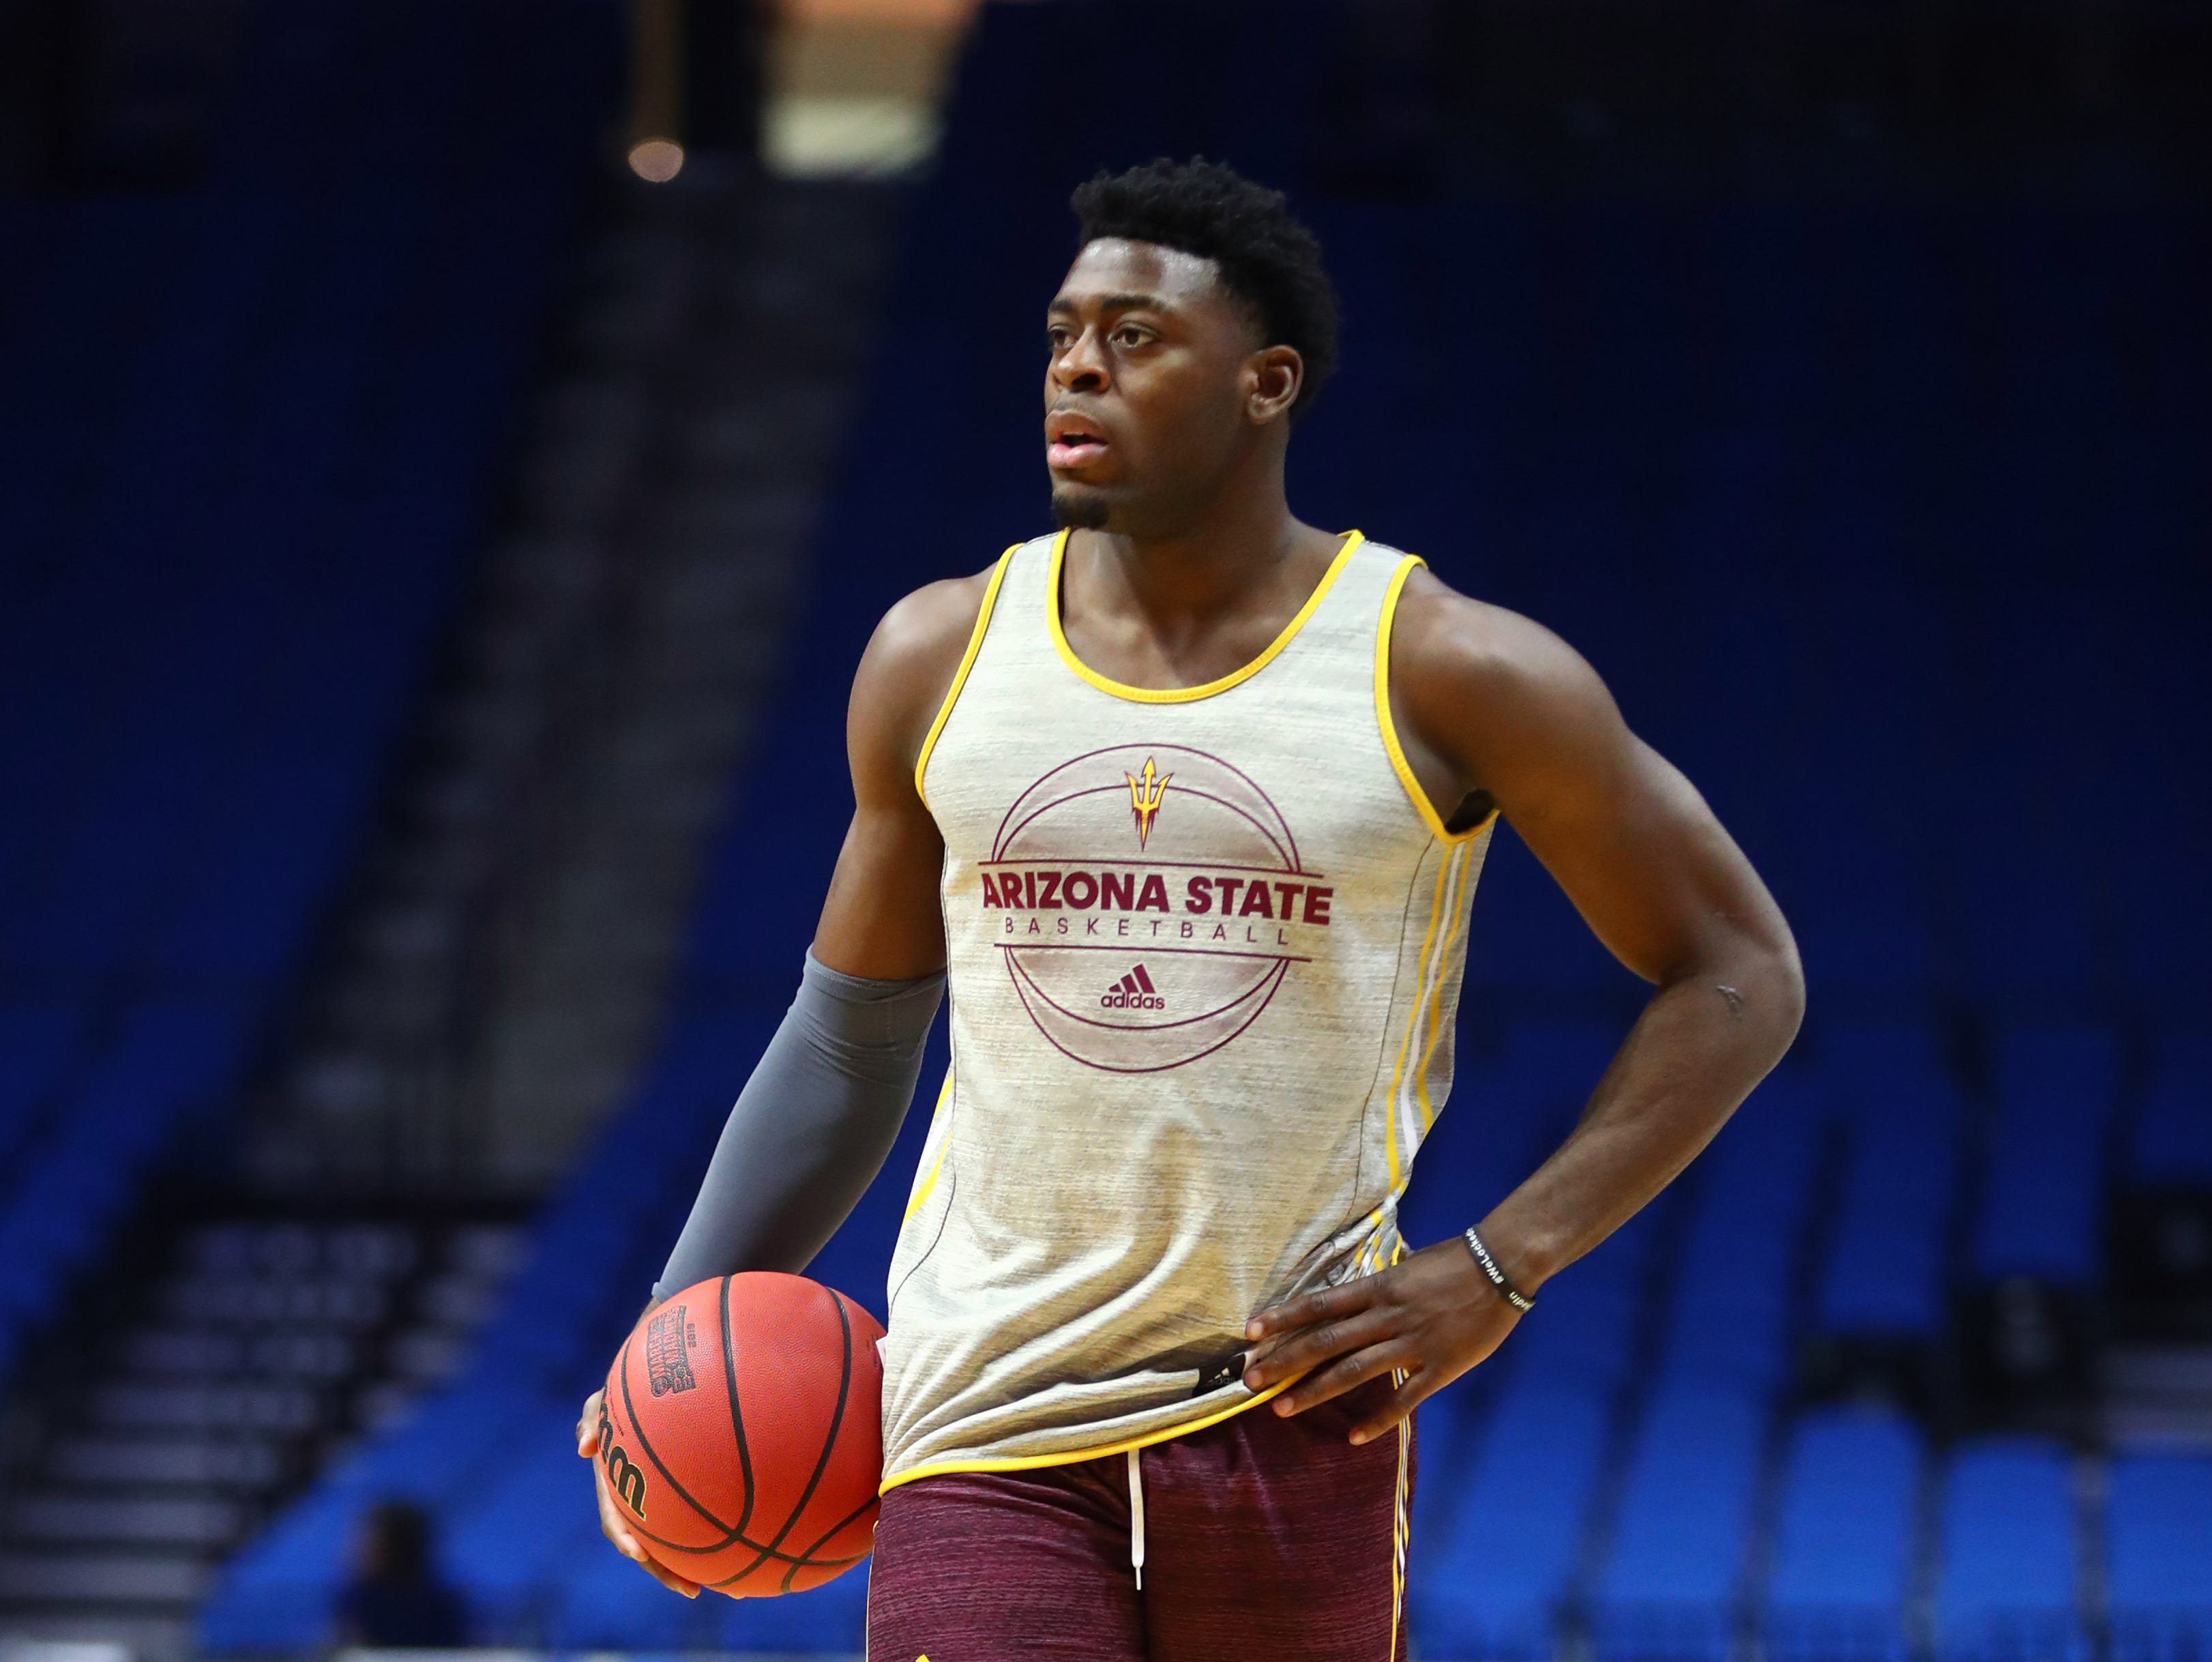 Mar 21, 2019; Tulsa, OK, USA; Arizona State Sun Devils guard Luguentz Dort during practice before the first round of the 2019 NCAA Tournament at BOK Center. Mandatory Credit: Mark J. Rebilas-USA TODAY Sports